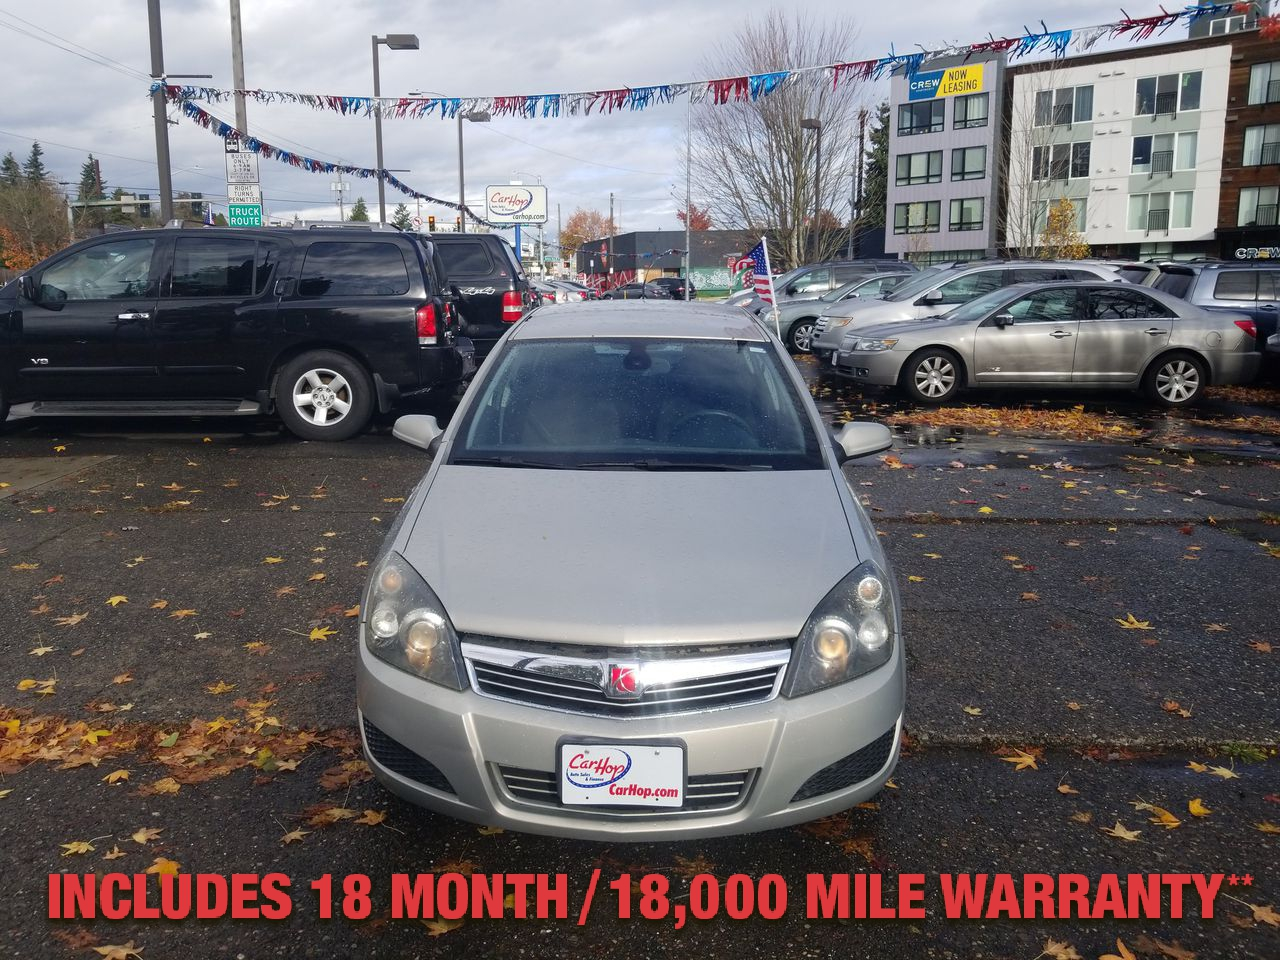 Pre-Owned 2008 SATURN ASTRA XE Hatchba